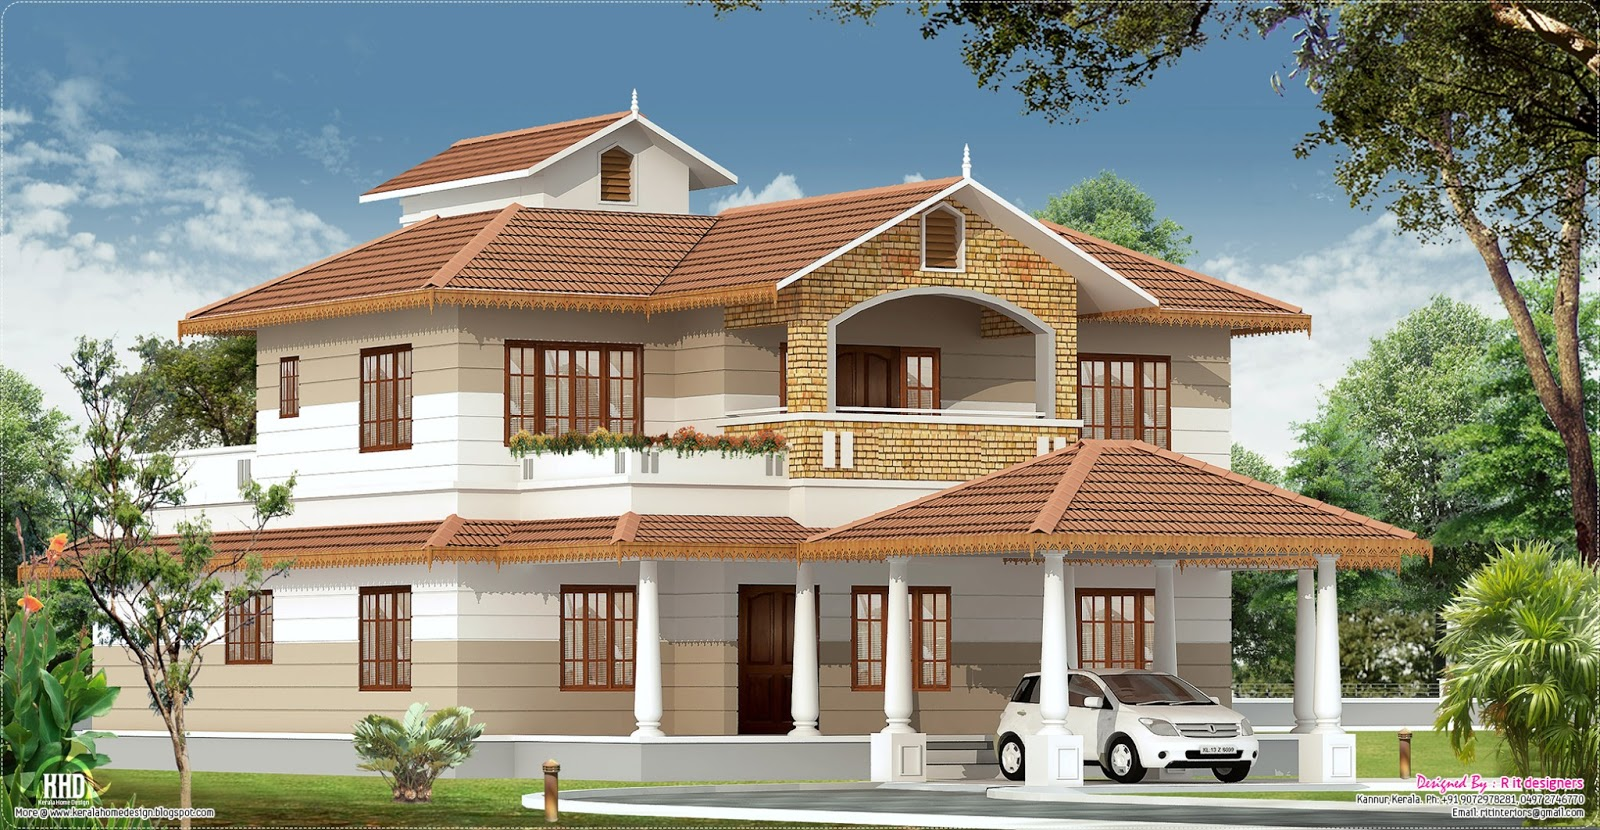 Awesome Kerala Style House Models Omahdesigns Net Largest Home Design Picture Inspirations Pitcheantrous